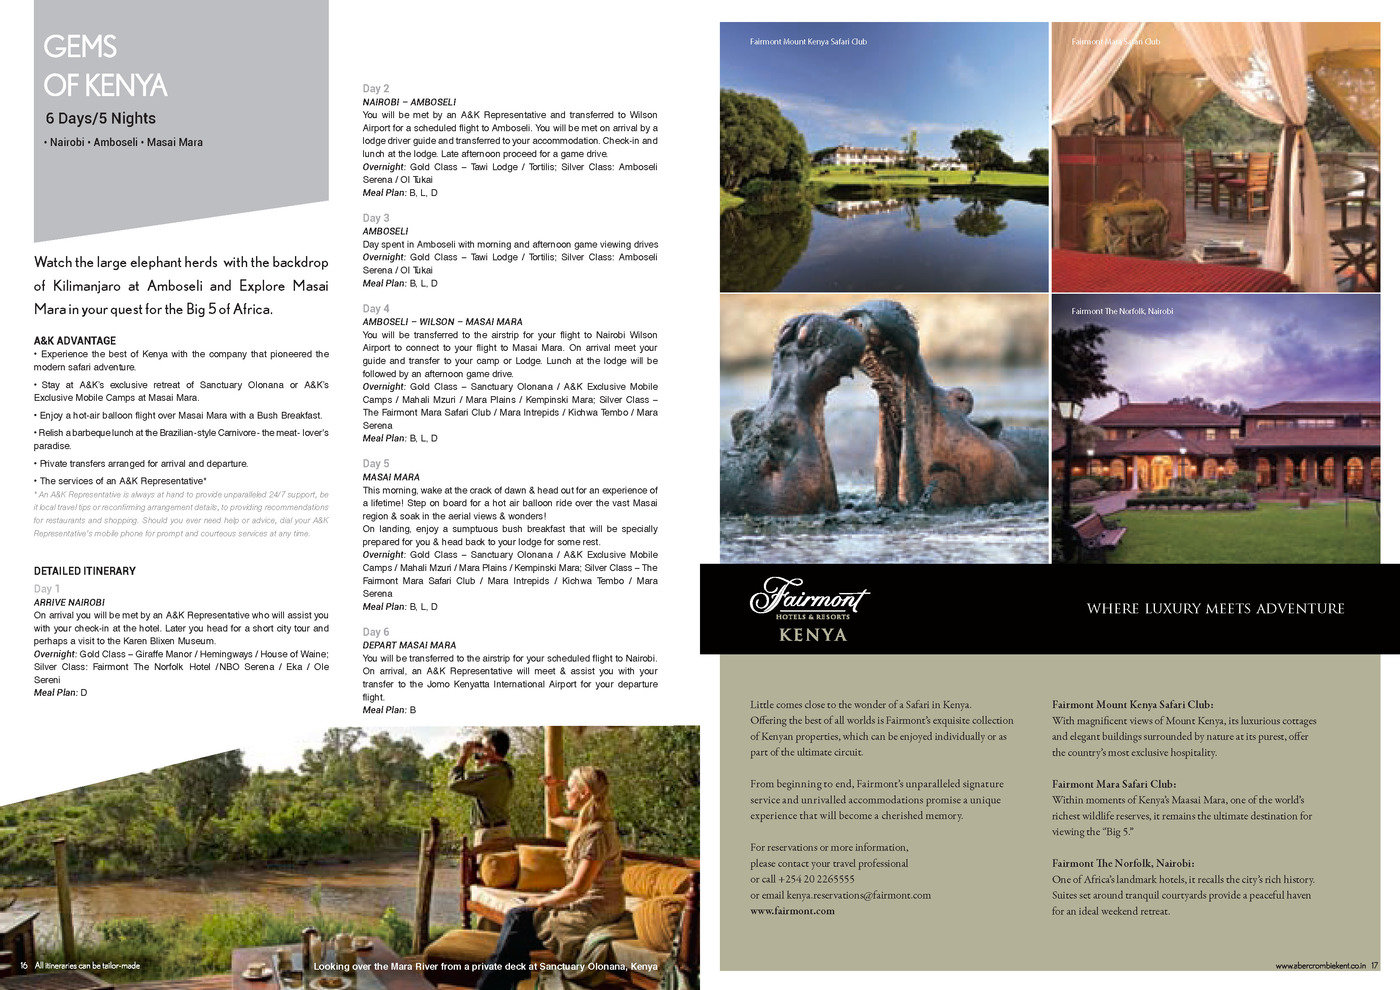 Abercrombie & Kent - Brochure Design by Sandeep Shukla at Coroflot com